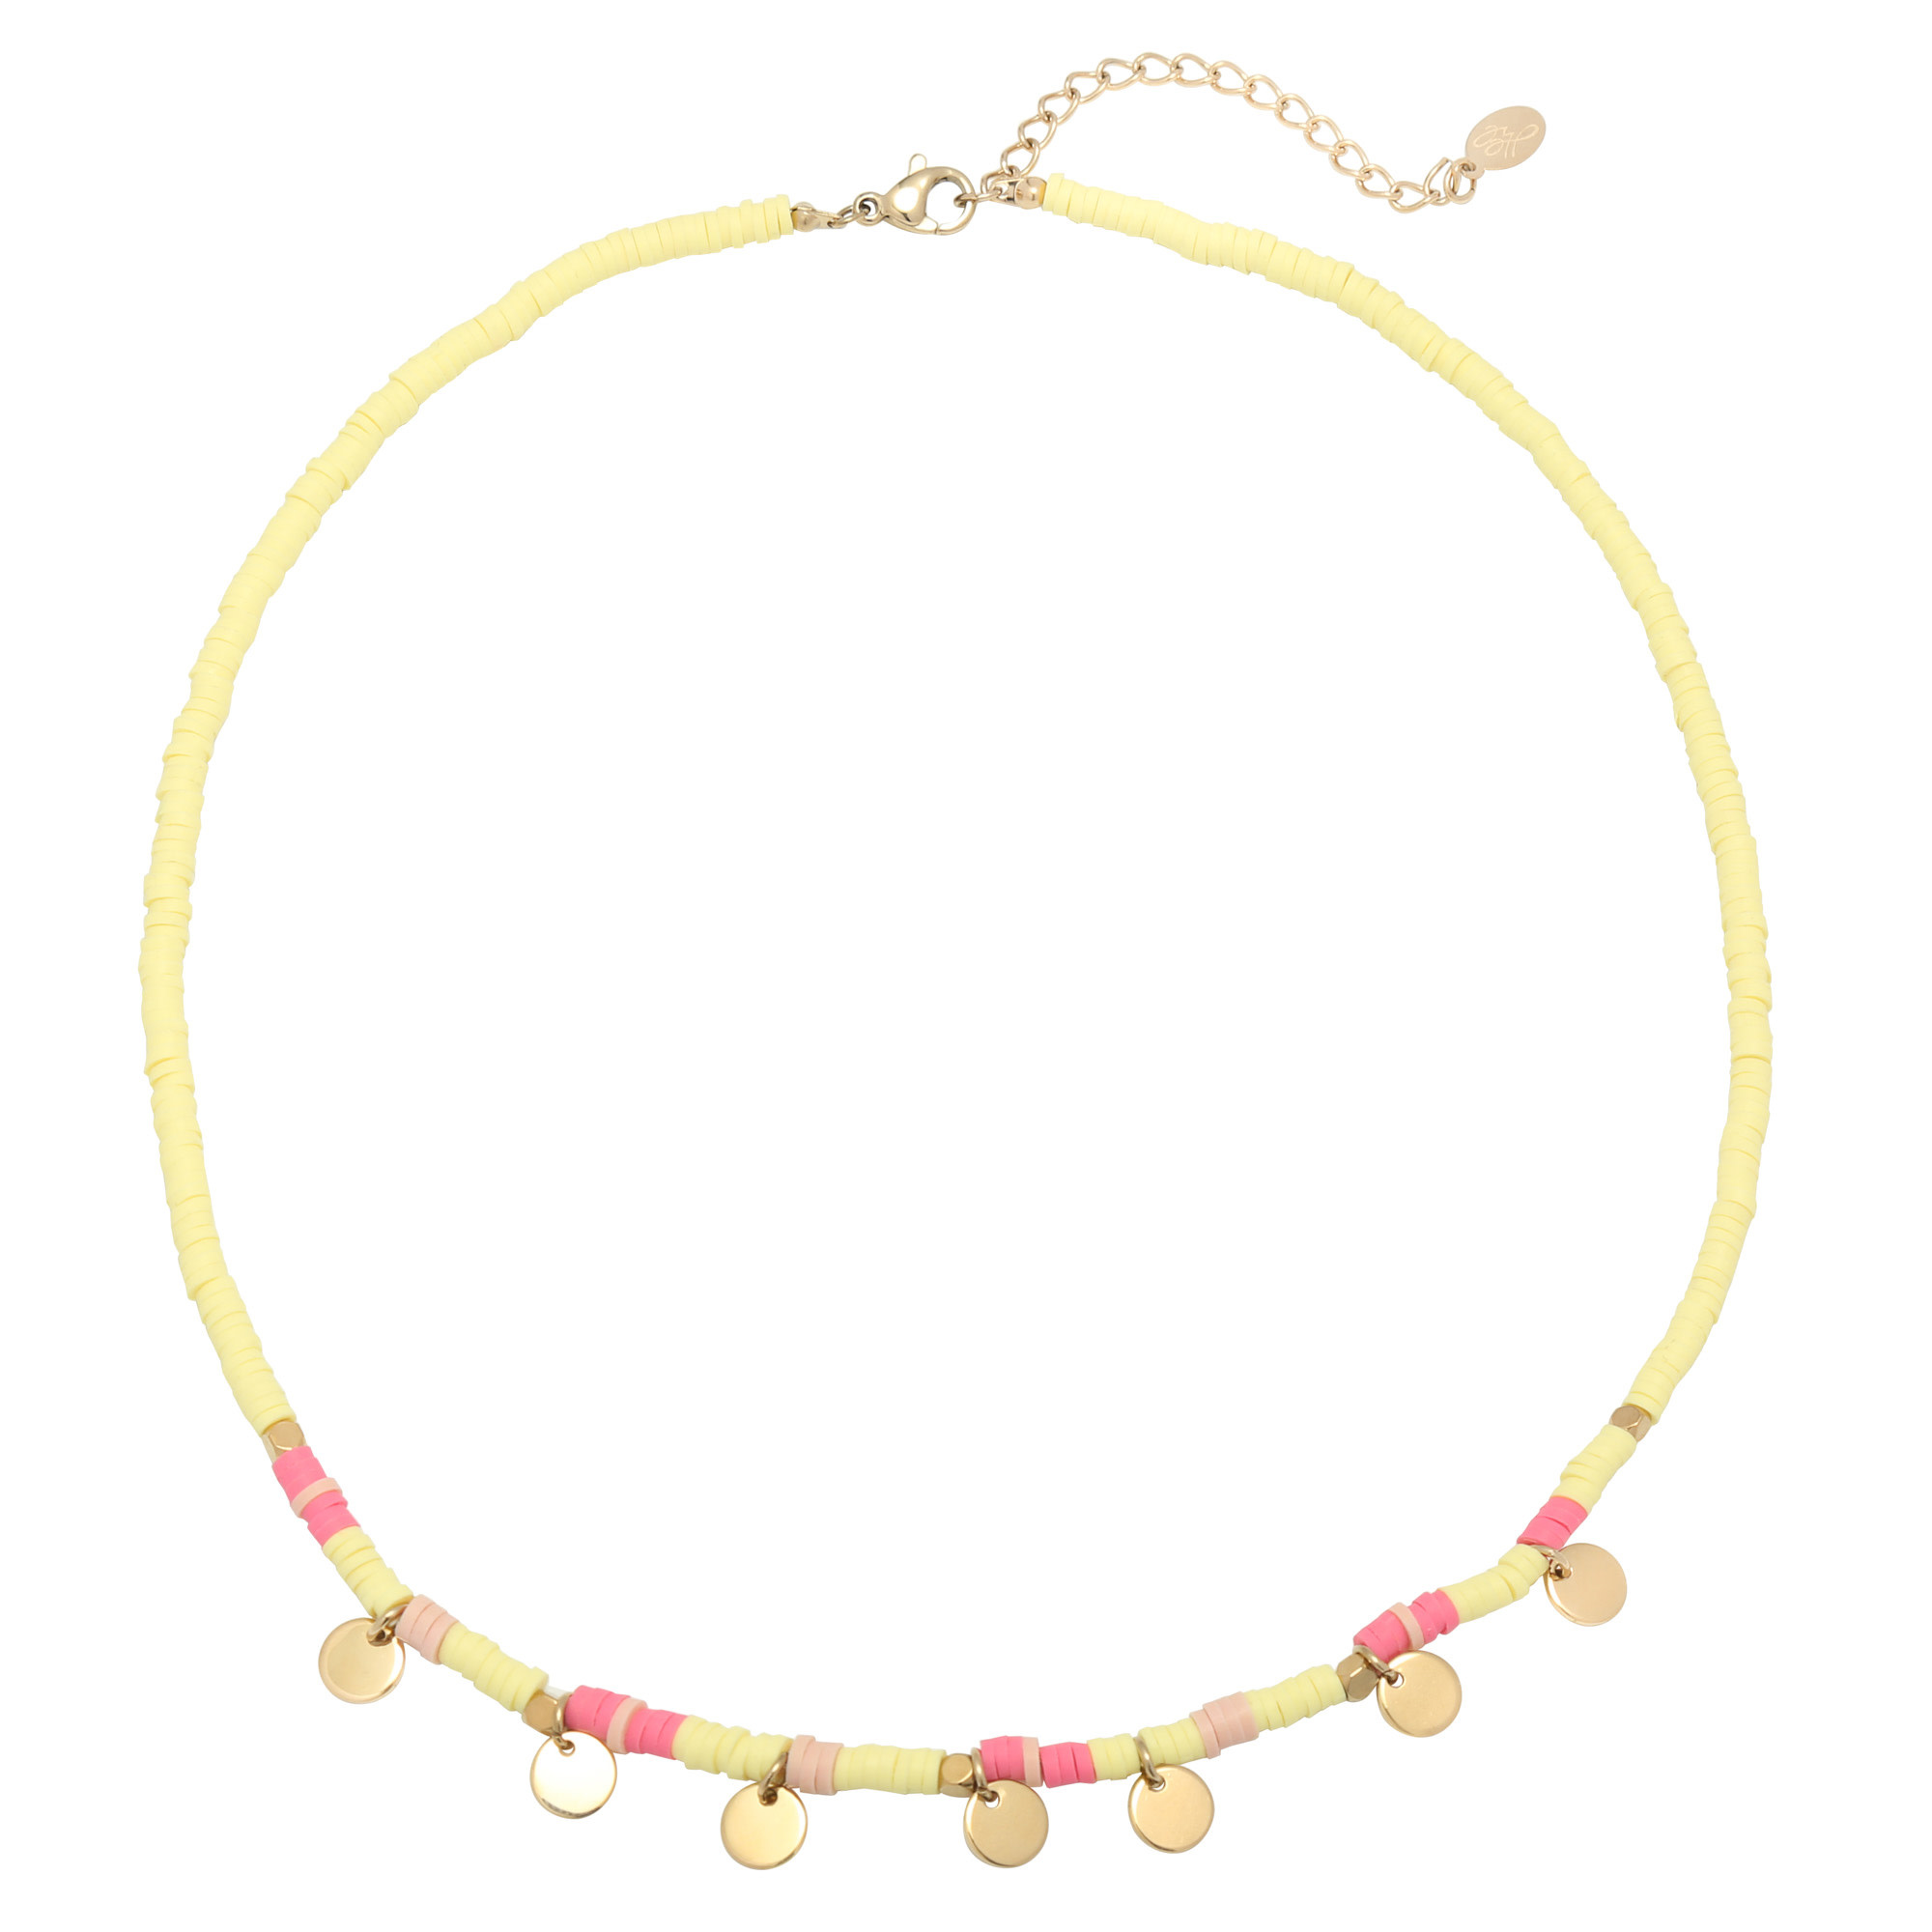 With love Necklace surf with me - Yellow gold